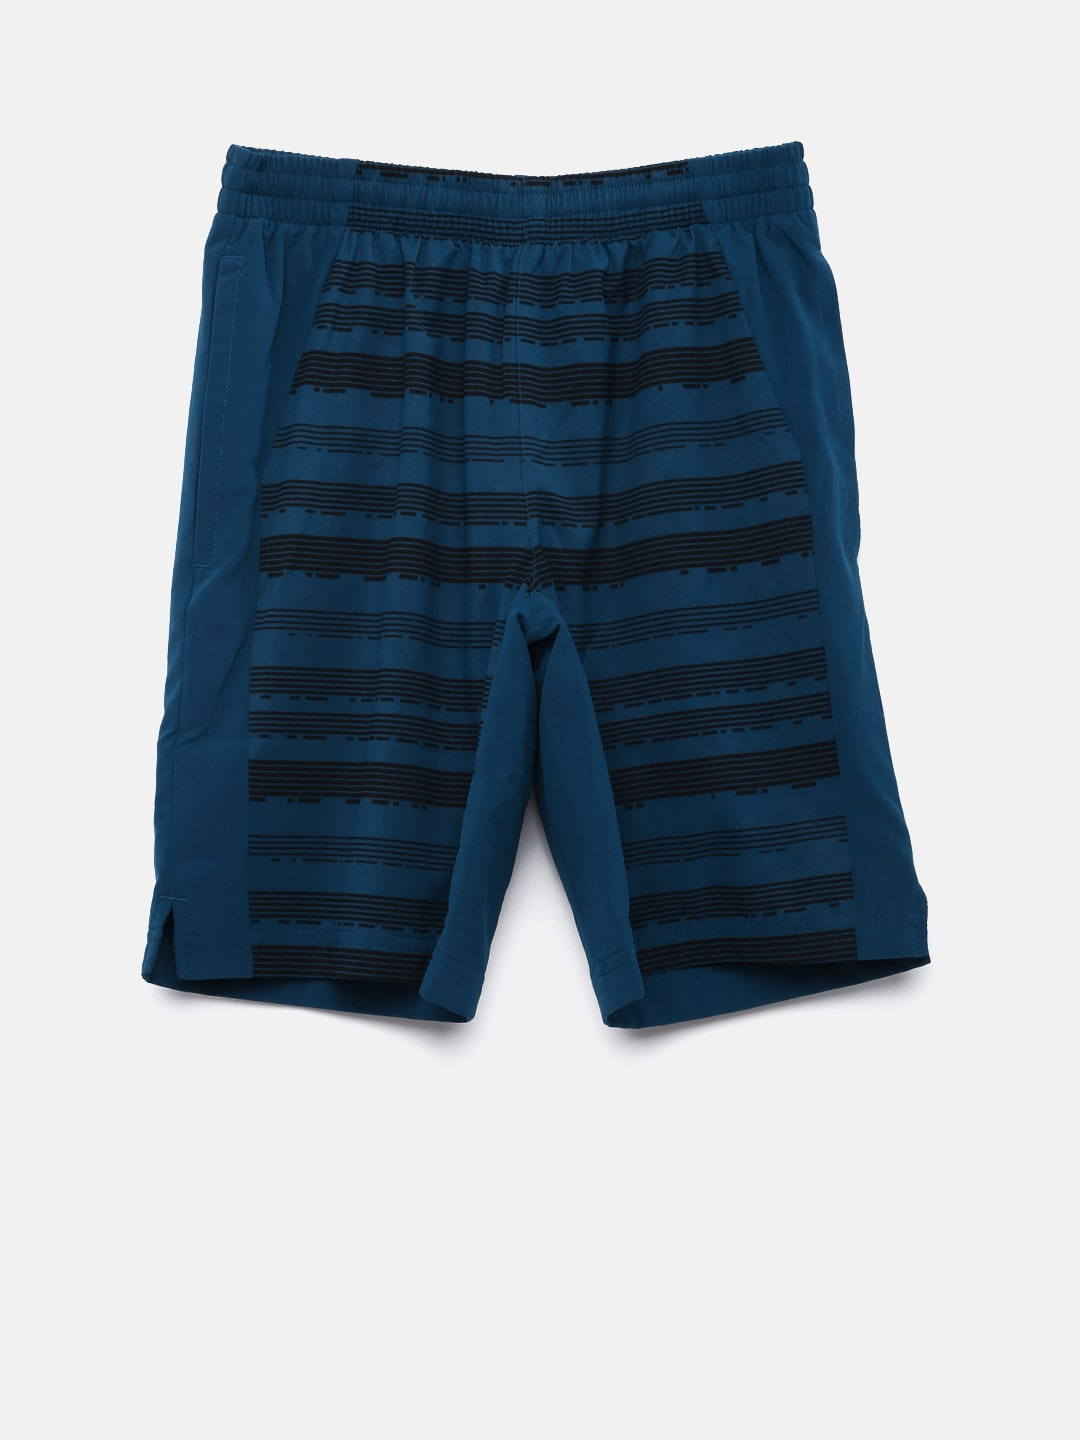 759ecab723427 adidas - Exclusive adidas Online Store in India at Myntra